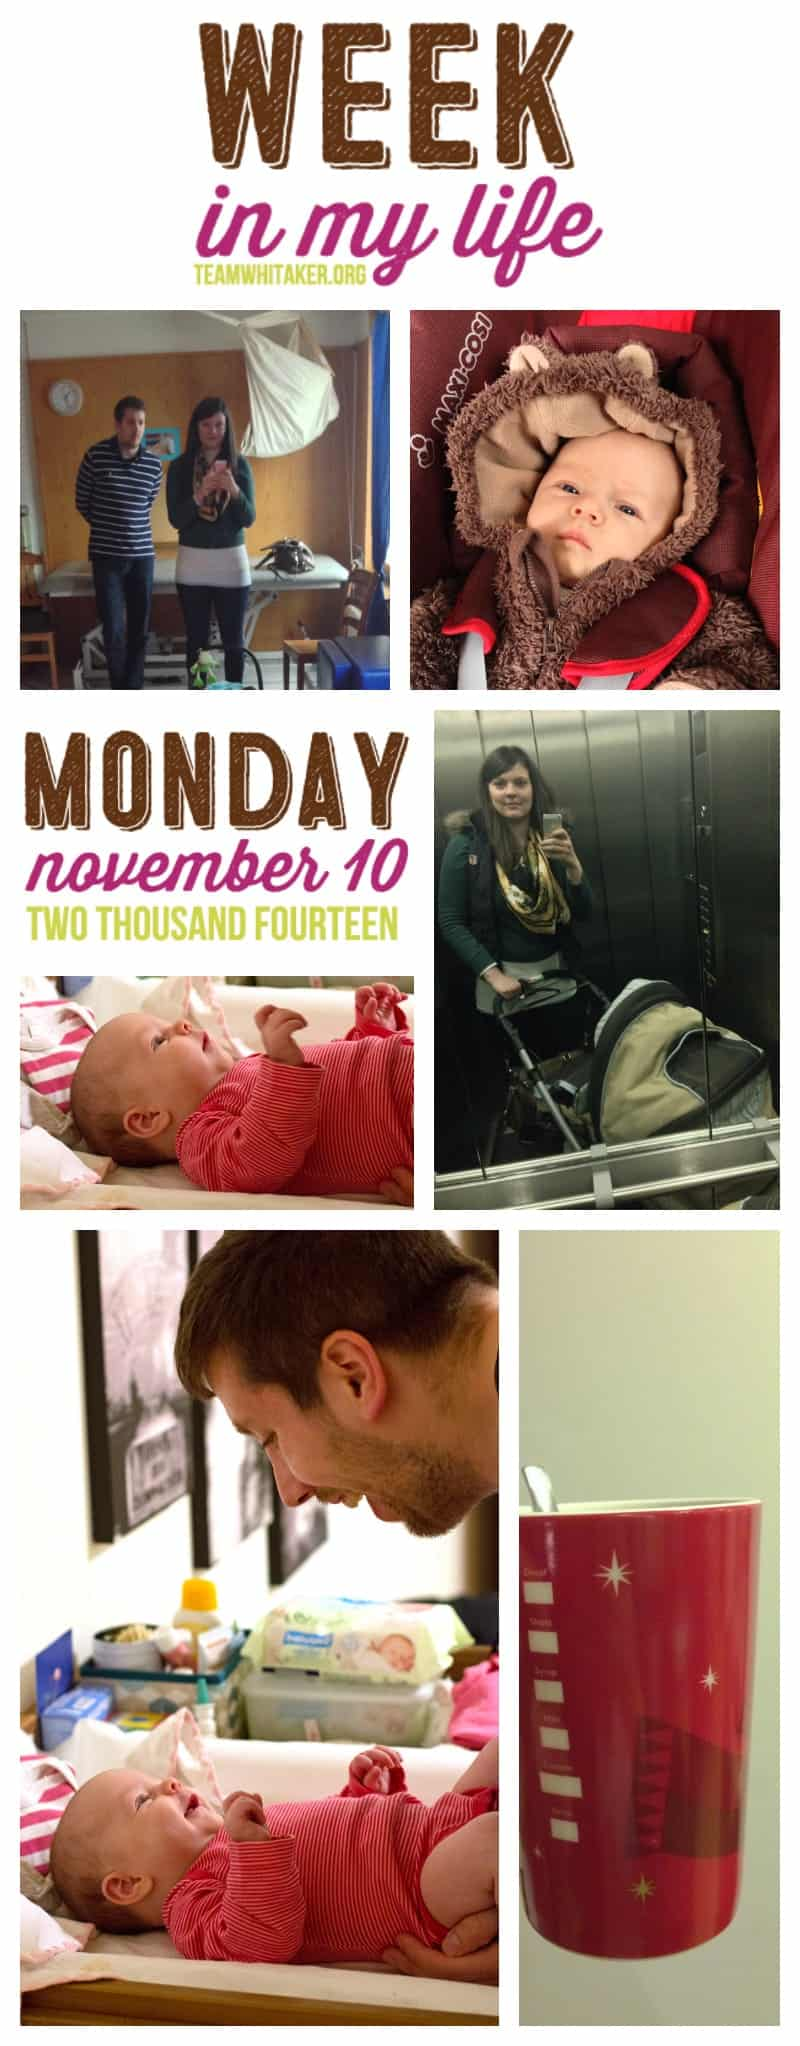 Week in My Life 2014: Monday November 10th